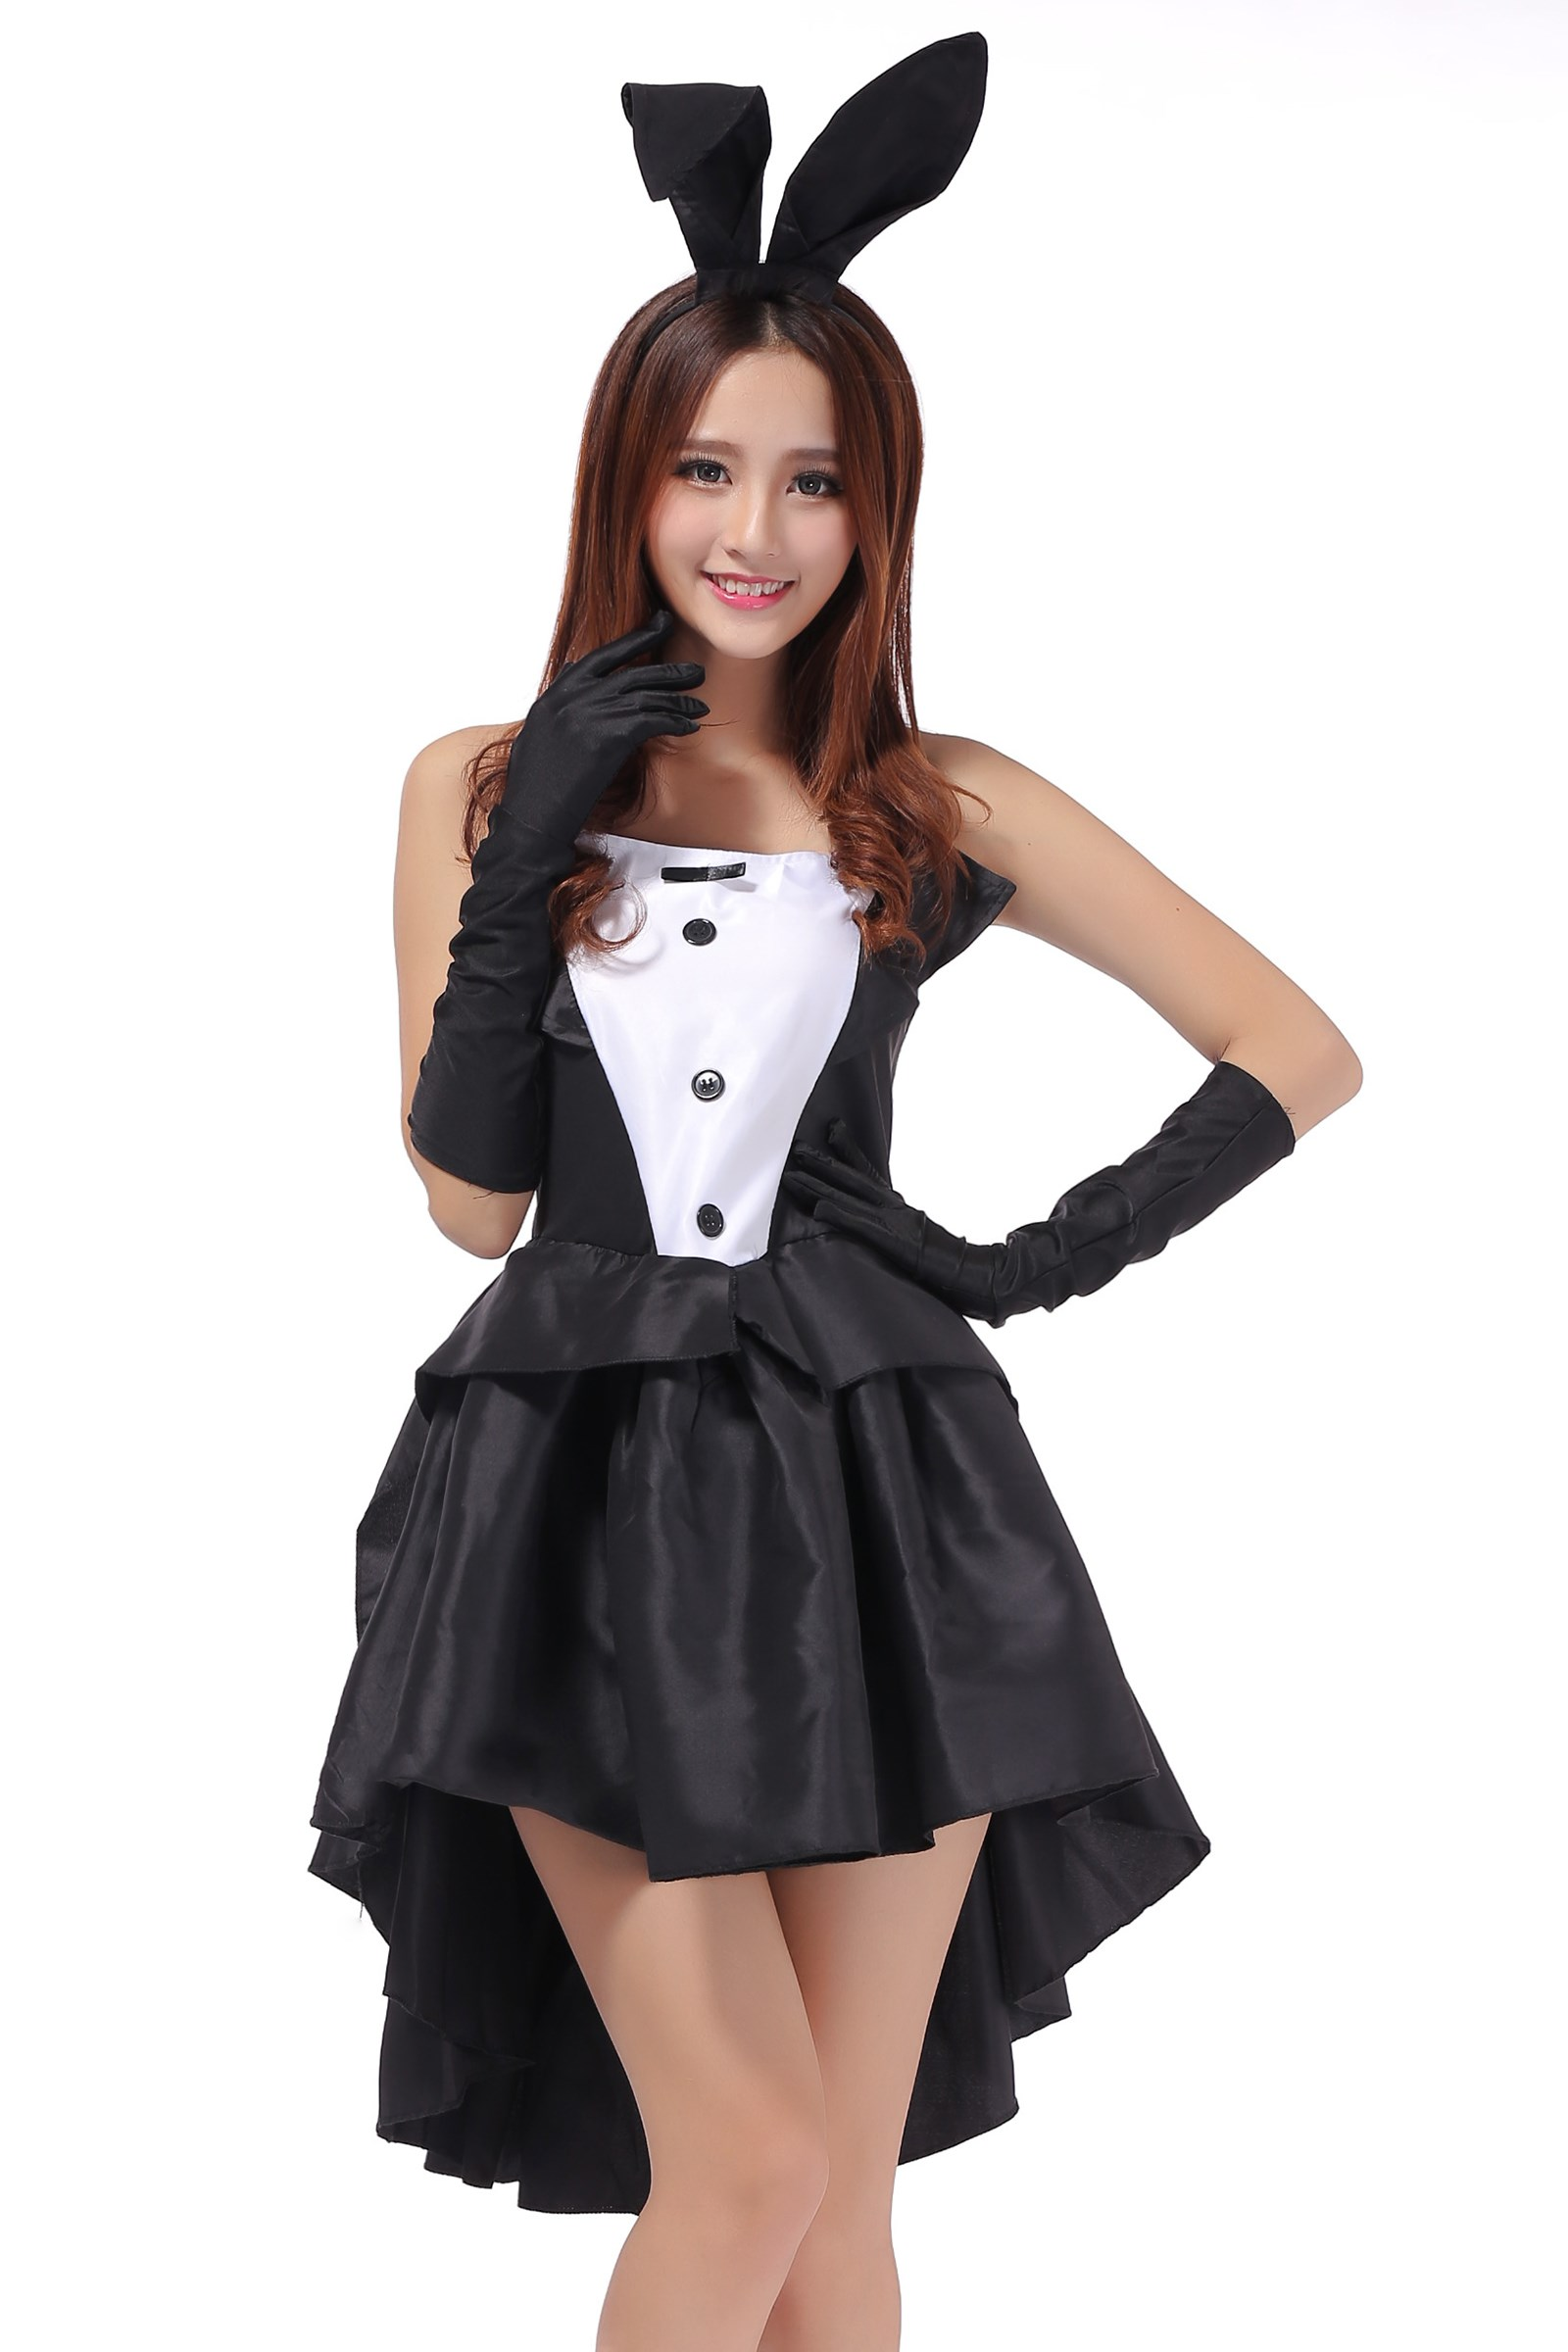 Tuxedo rabbit costume stage costume bunny show dress bar uniform jazz dance package